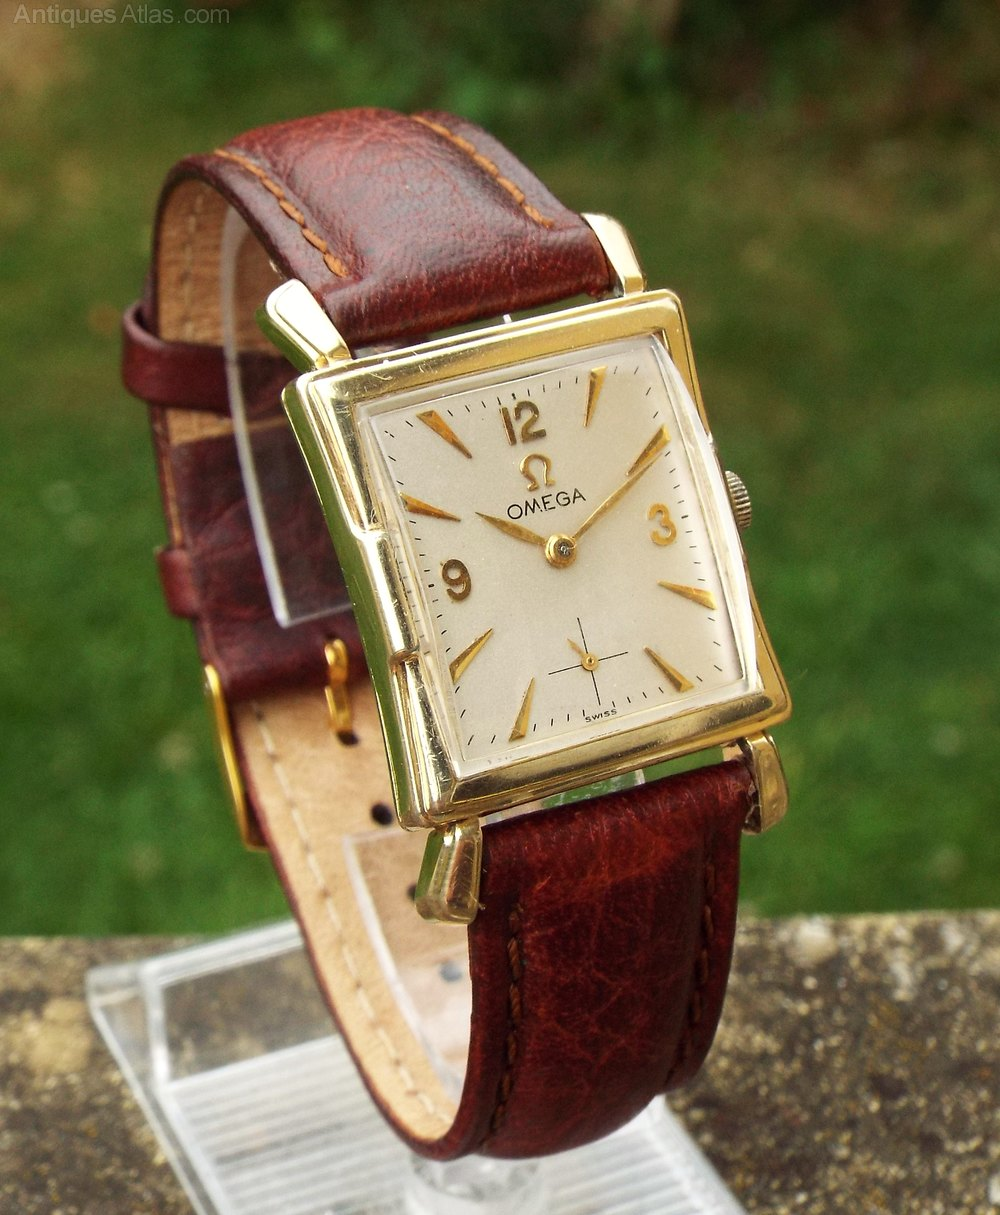 Antiques atlas gents 1950s art deco style omega wrist watch for Art deco look